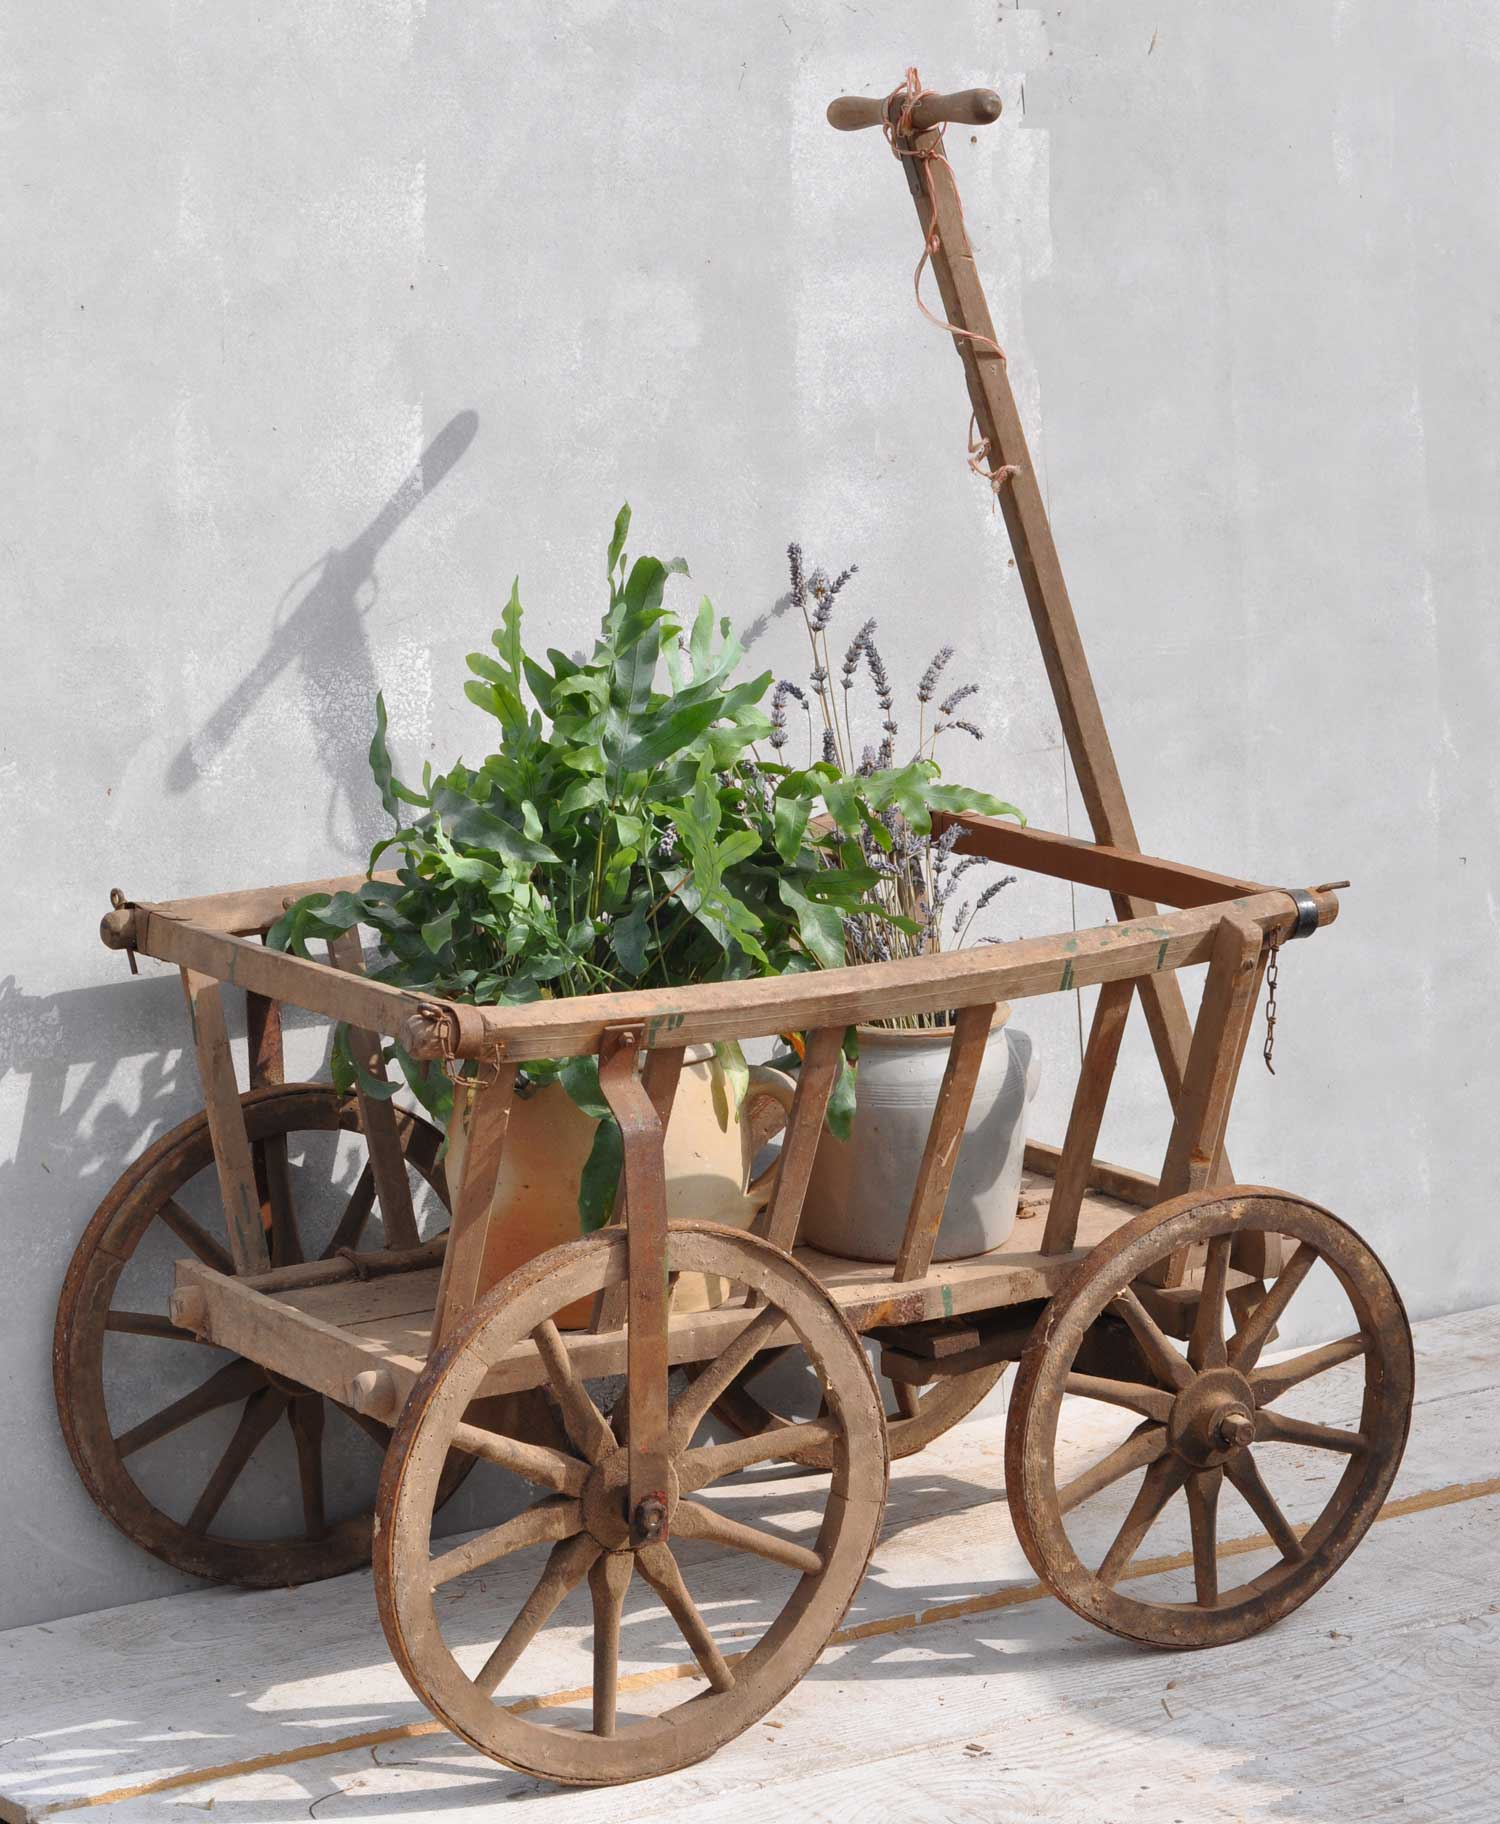 Antique Wooden Dog Cart For Retail Or Garden Display